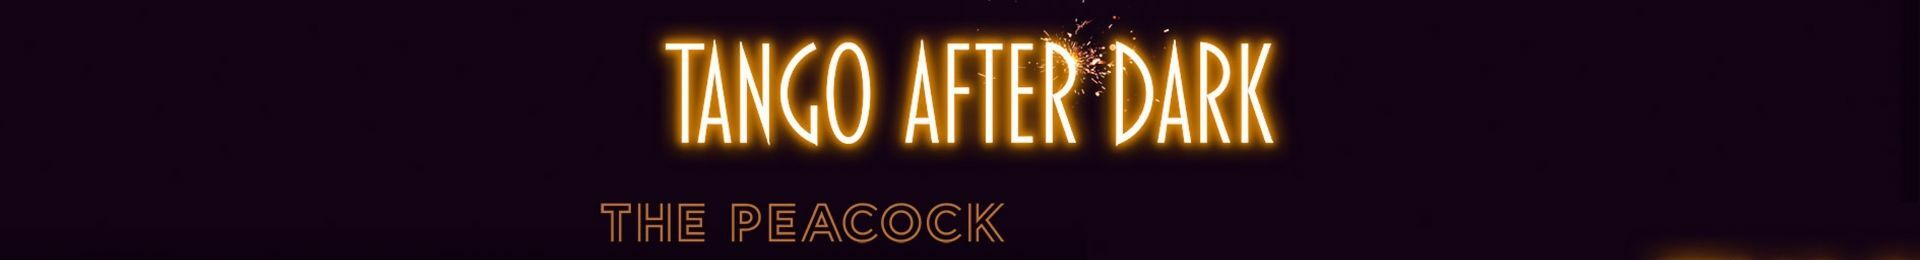 Tango After Dark banner image